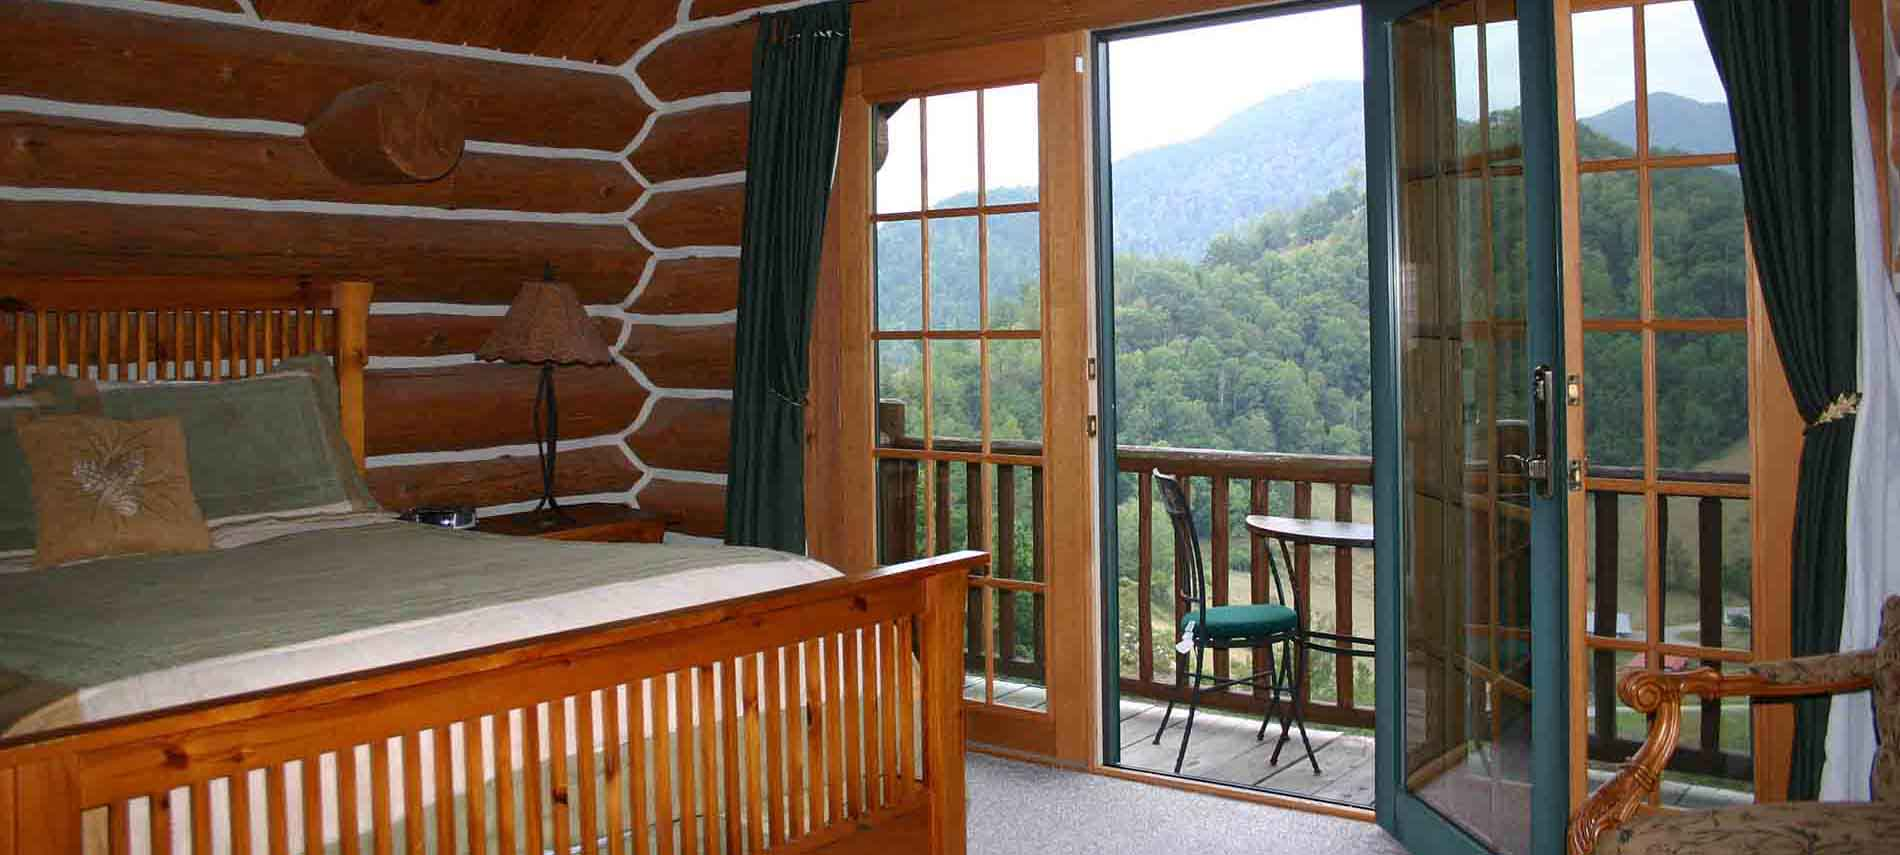 Gooseberry guest room with log walls, balcony and stunning mountain views